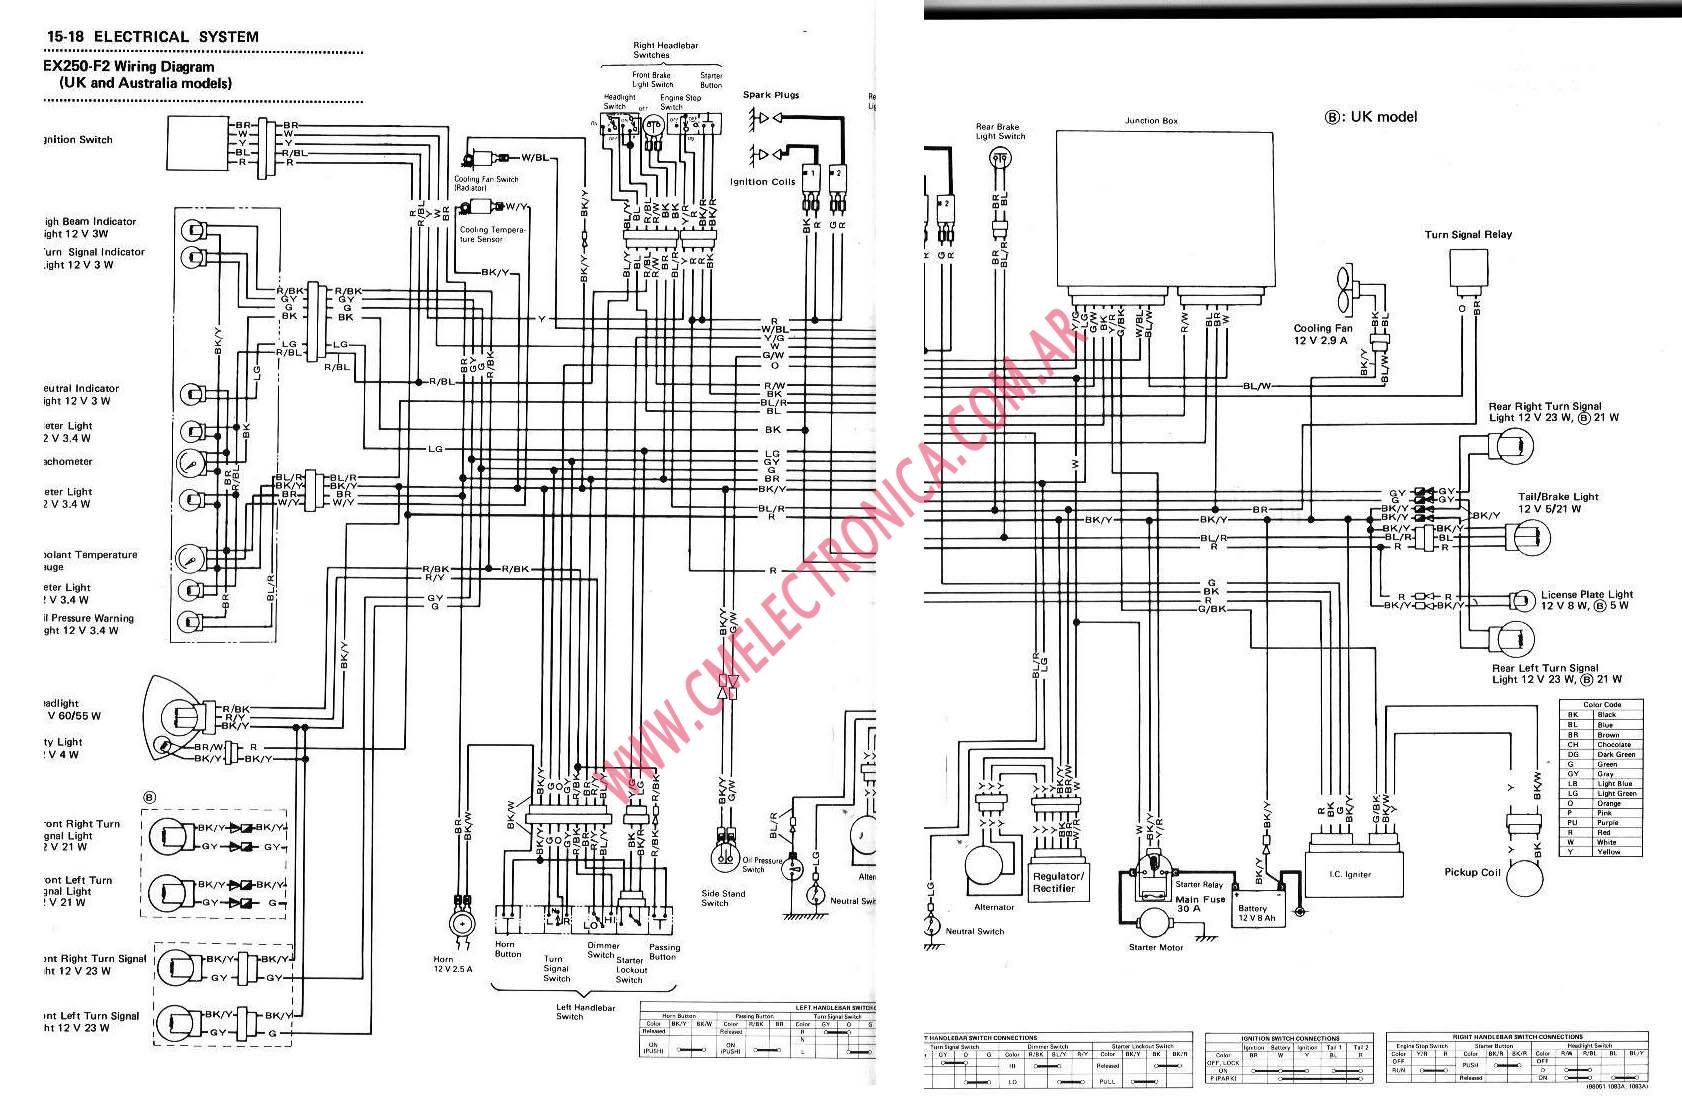 2003 Kawasaki Bayou Wiring Diagram Best Secret Polaris Scrambler 400 4x4 Sportsman Solenoid 250